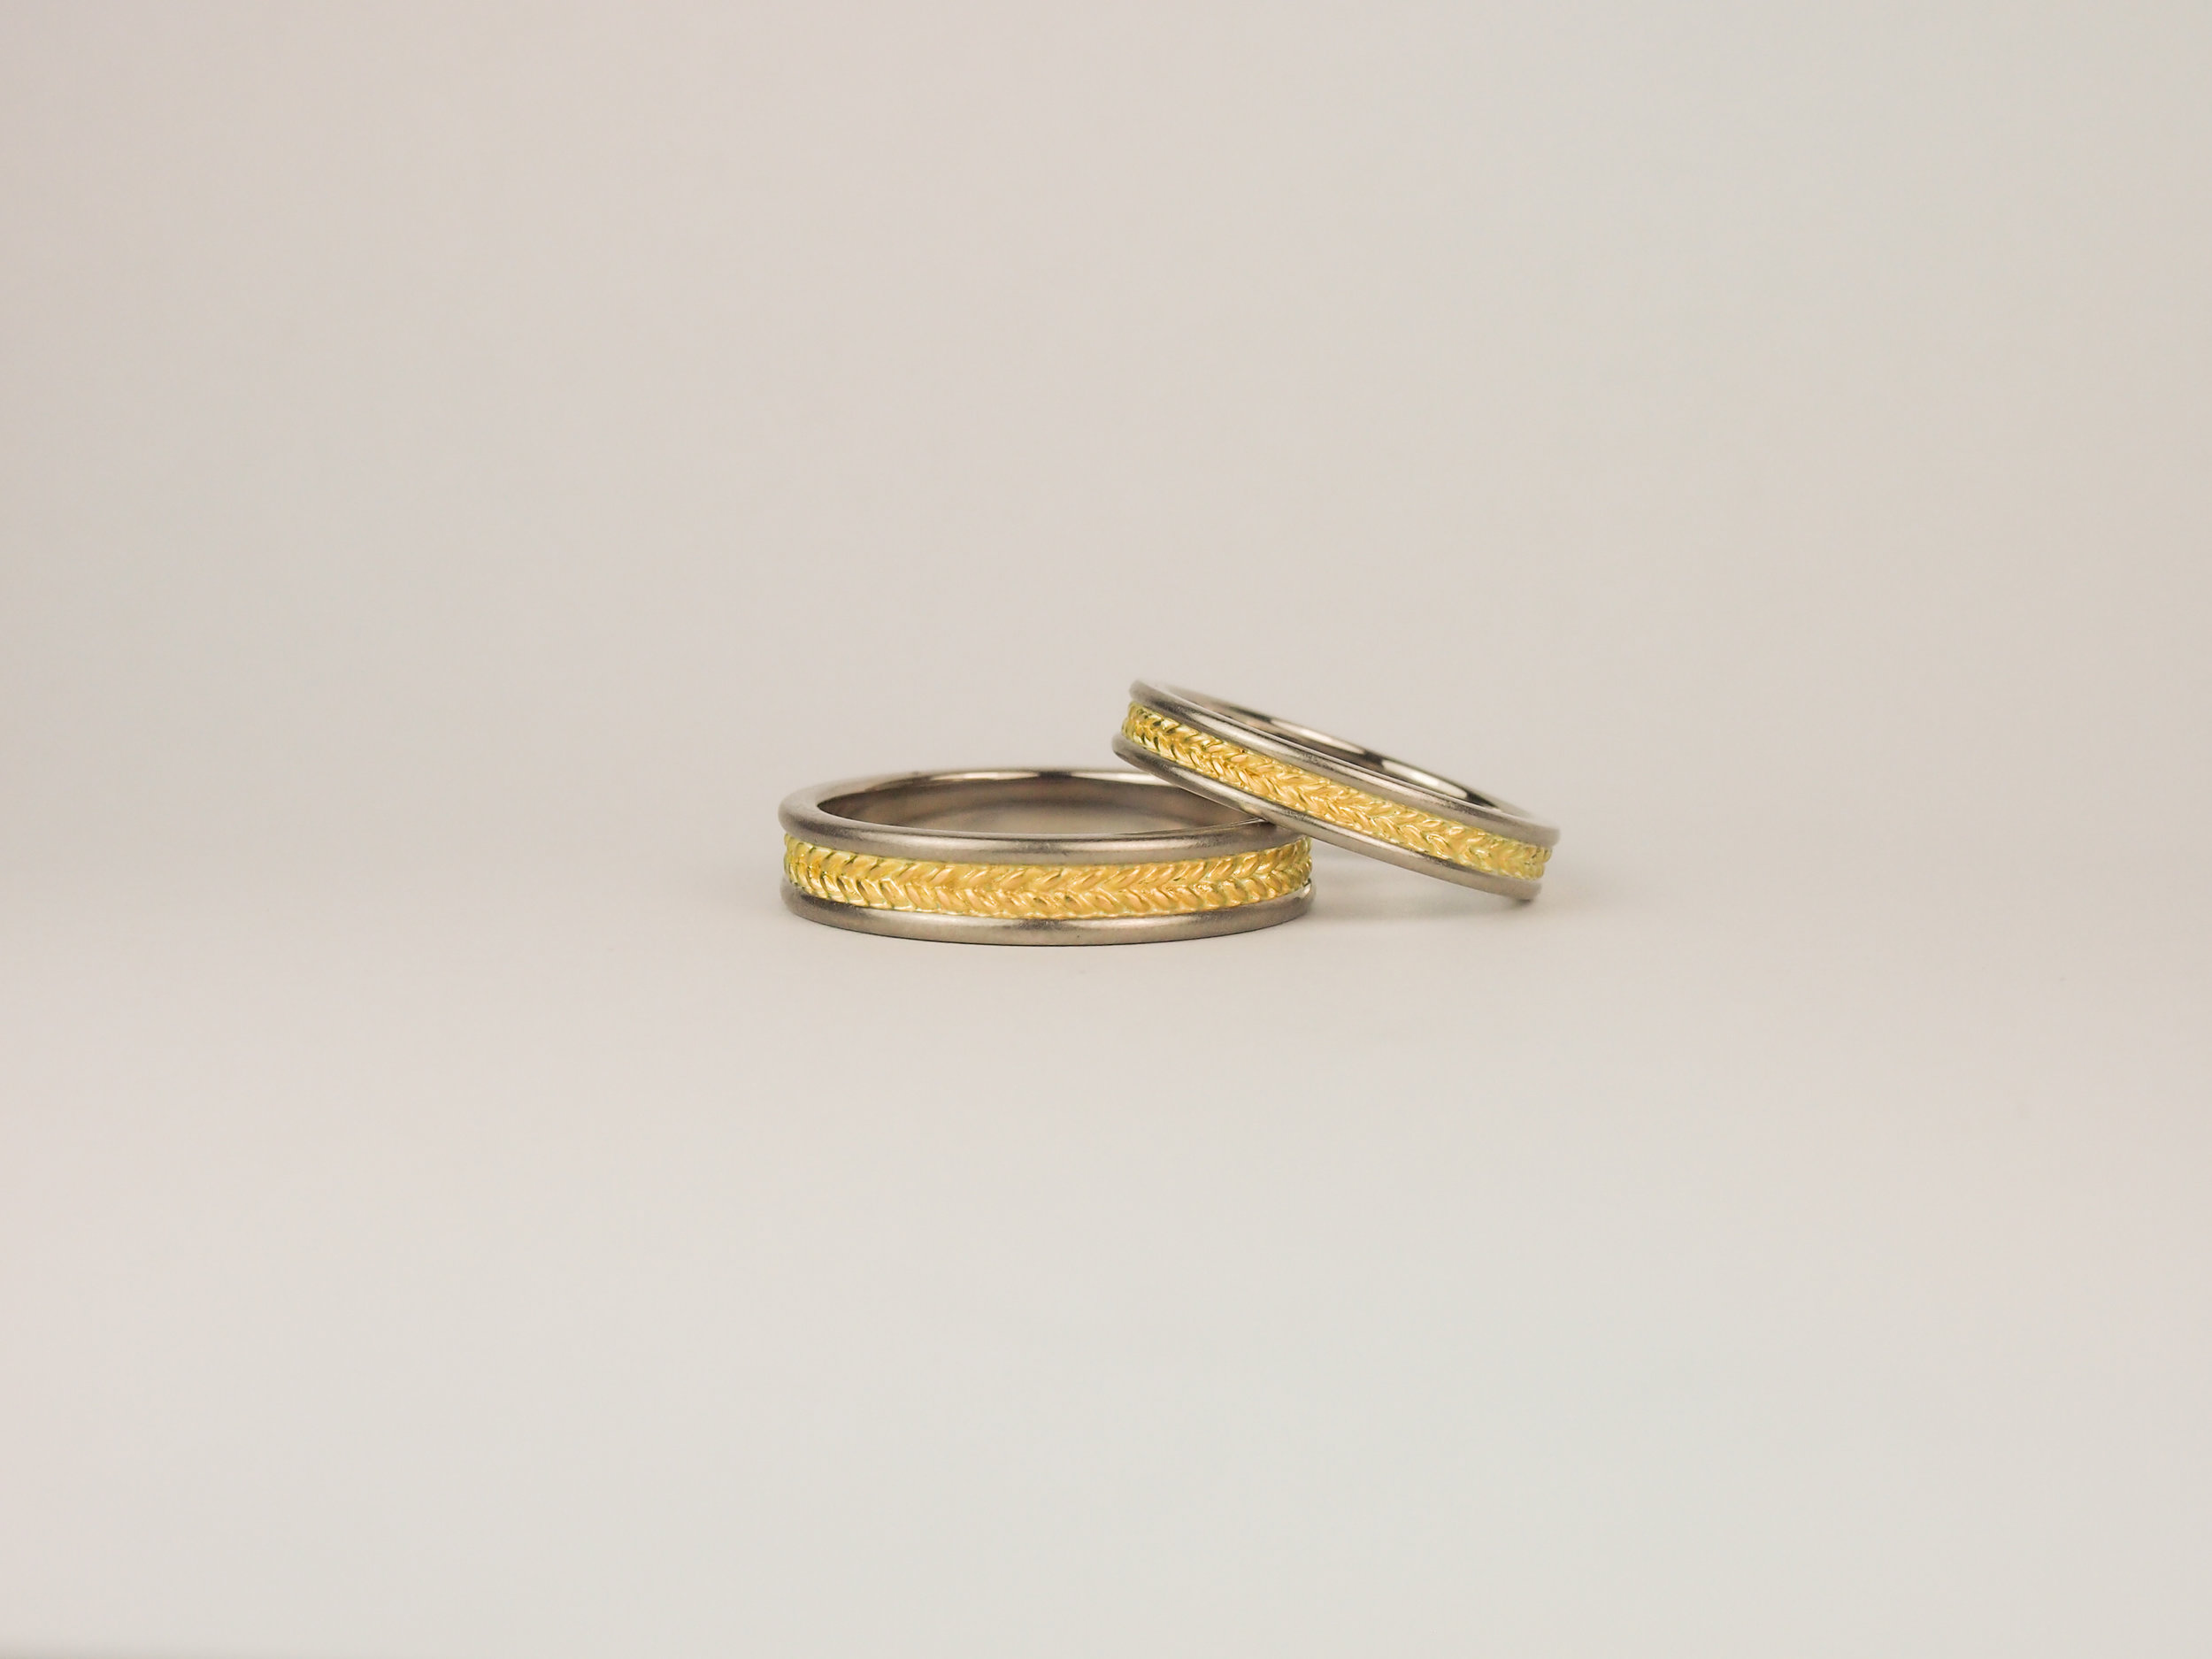 Matching twist pattern wedding rings in yellow and grey white gold